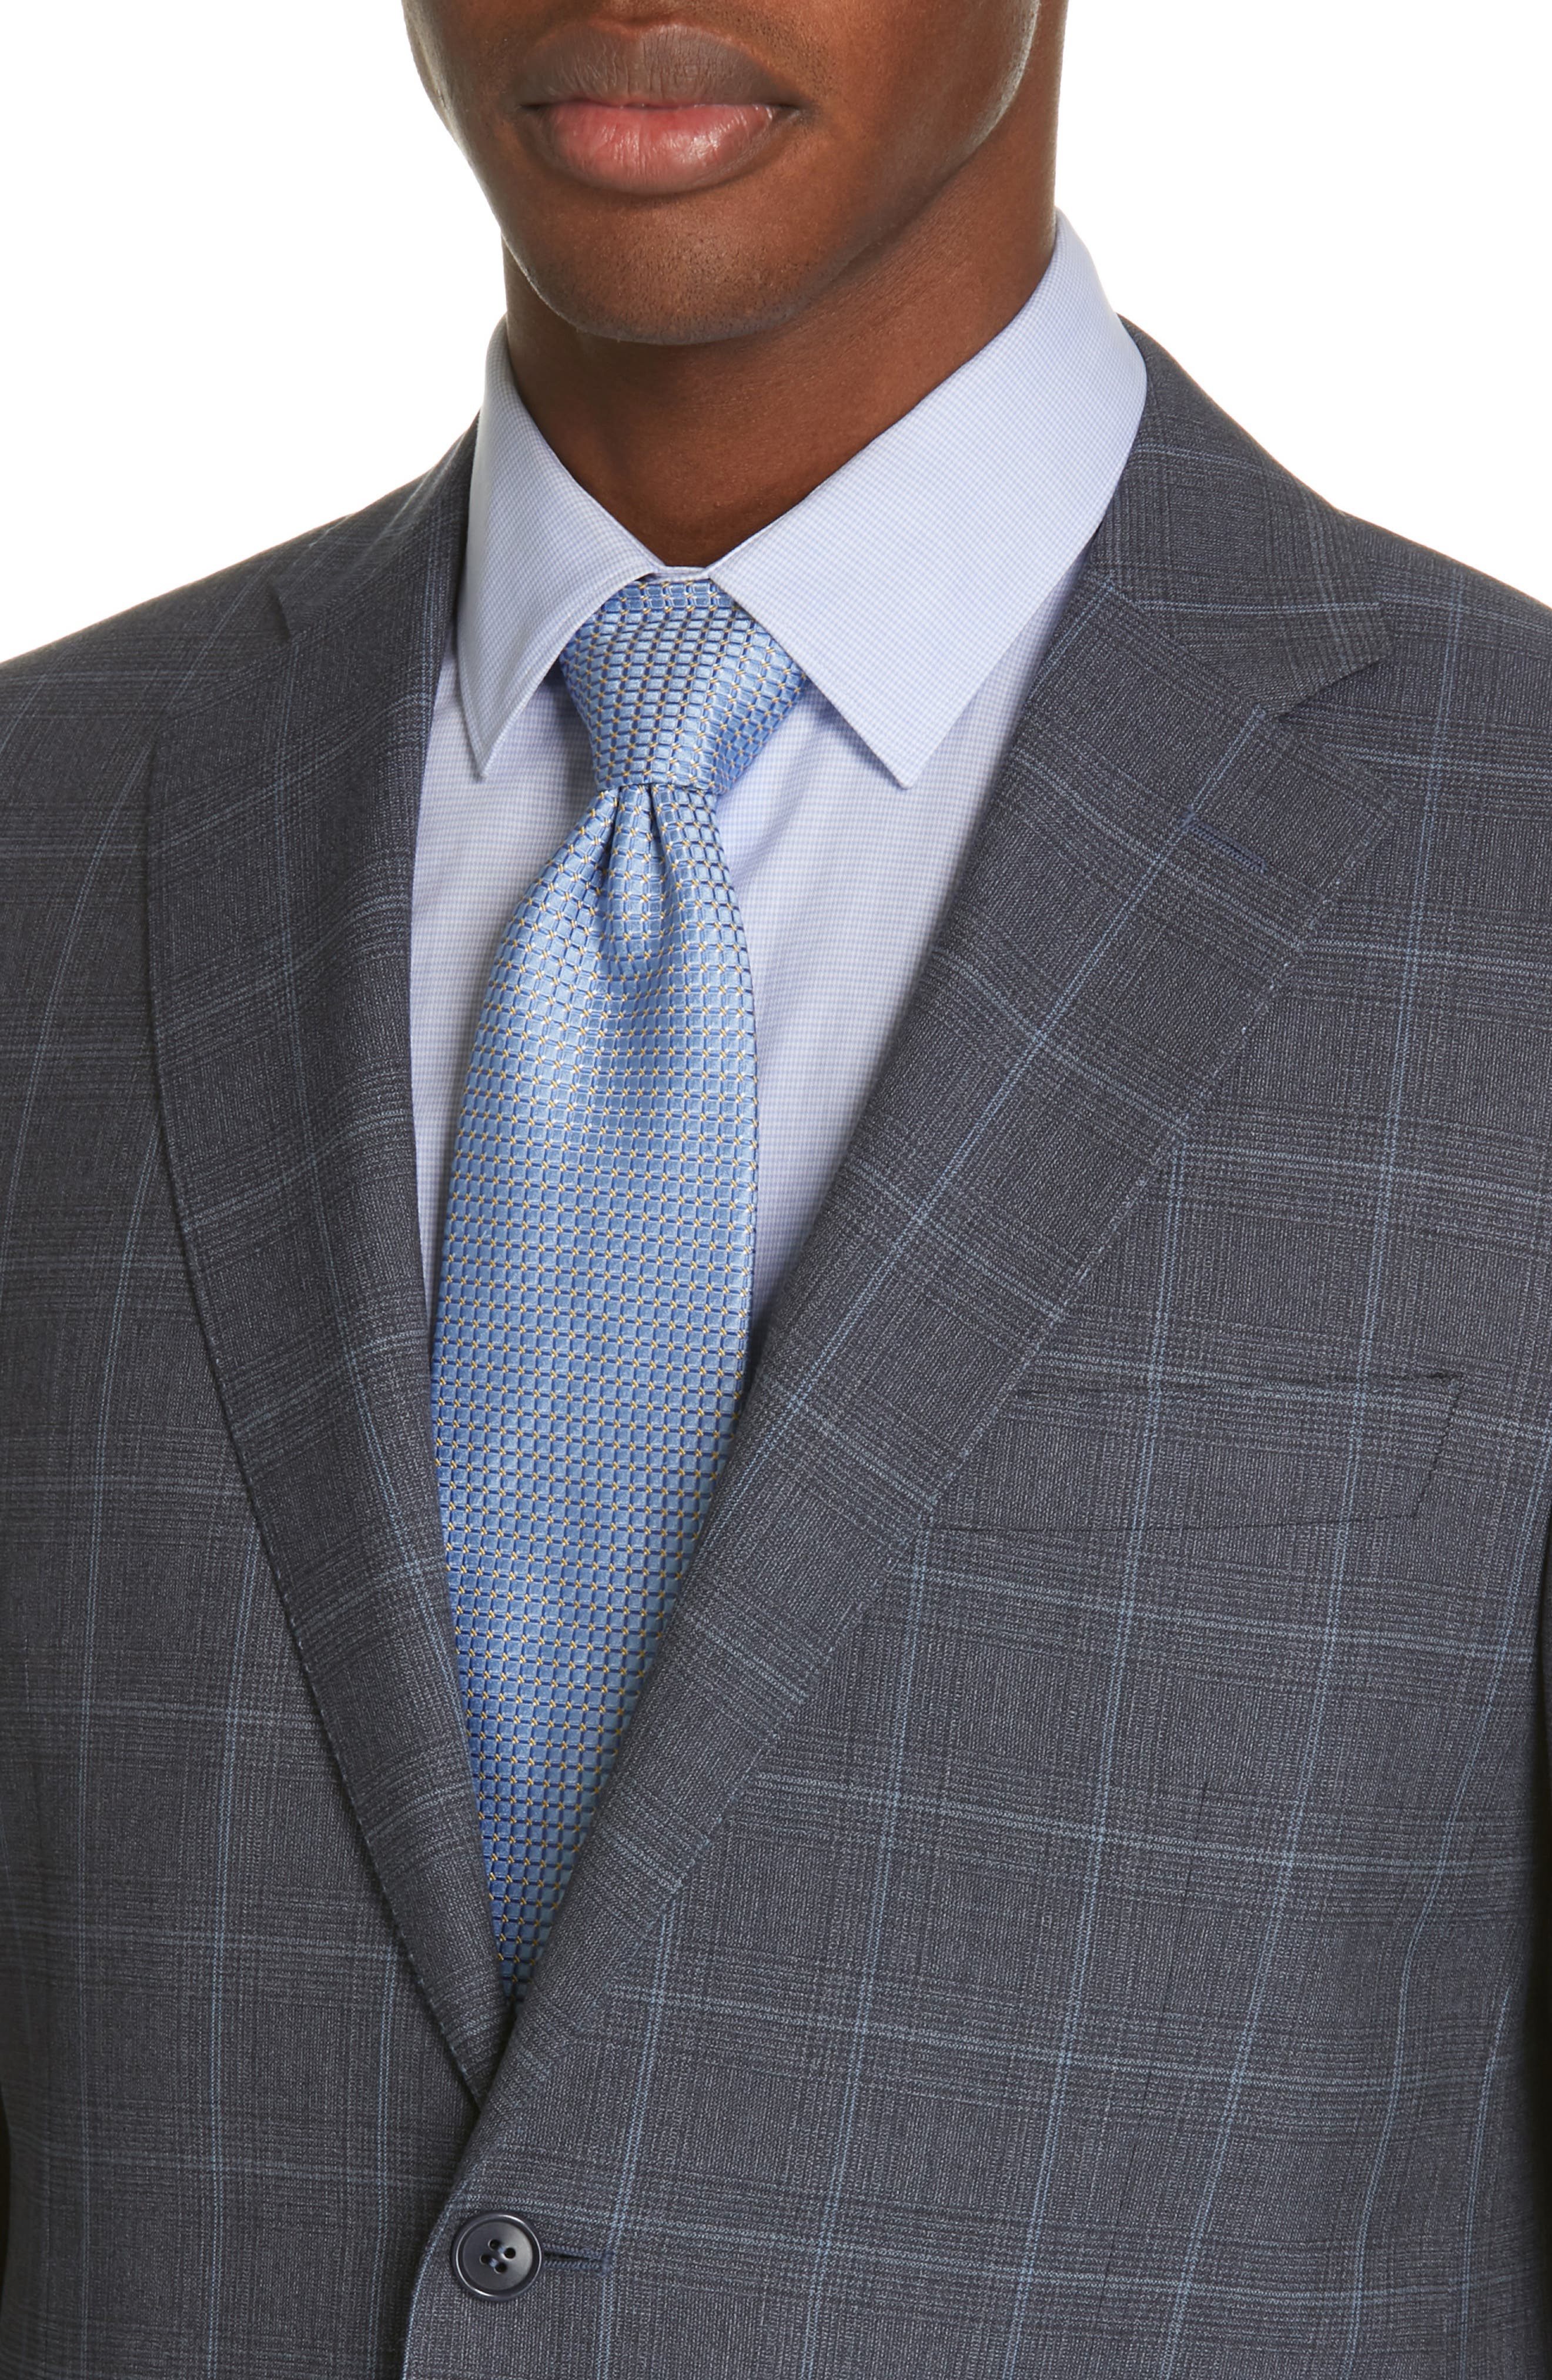 CANALI, Siena Soft Classic Fit Plaid Wool Suit, Alternate thumbnail 4, color, CHARCOAL